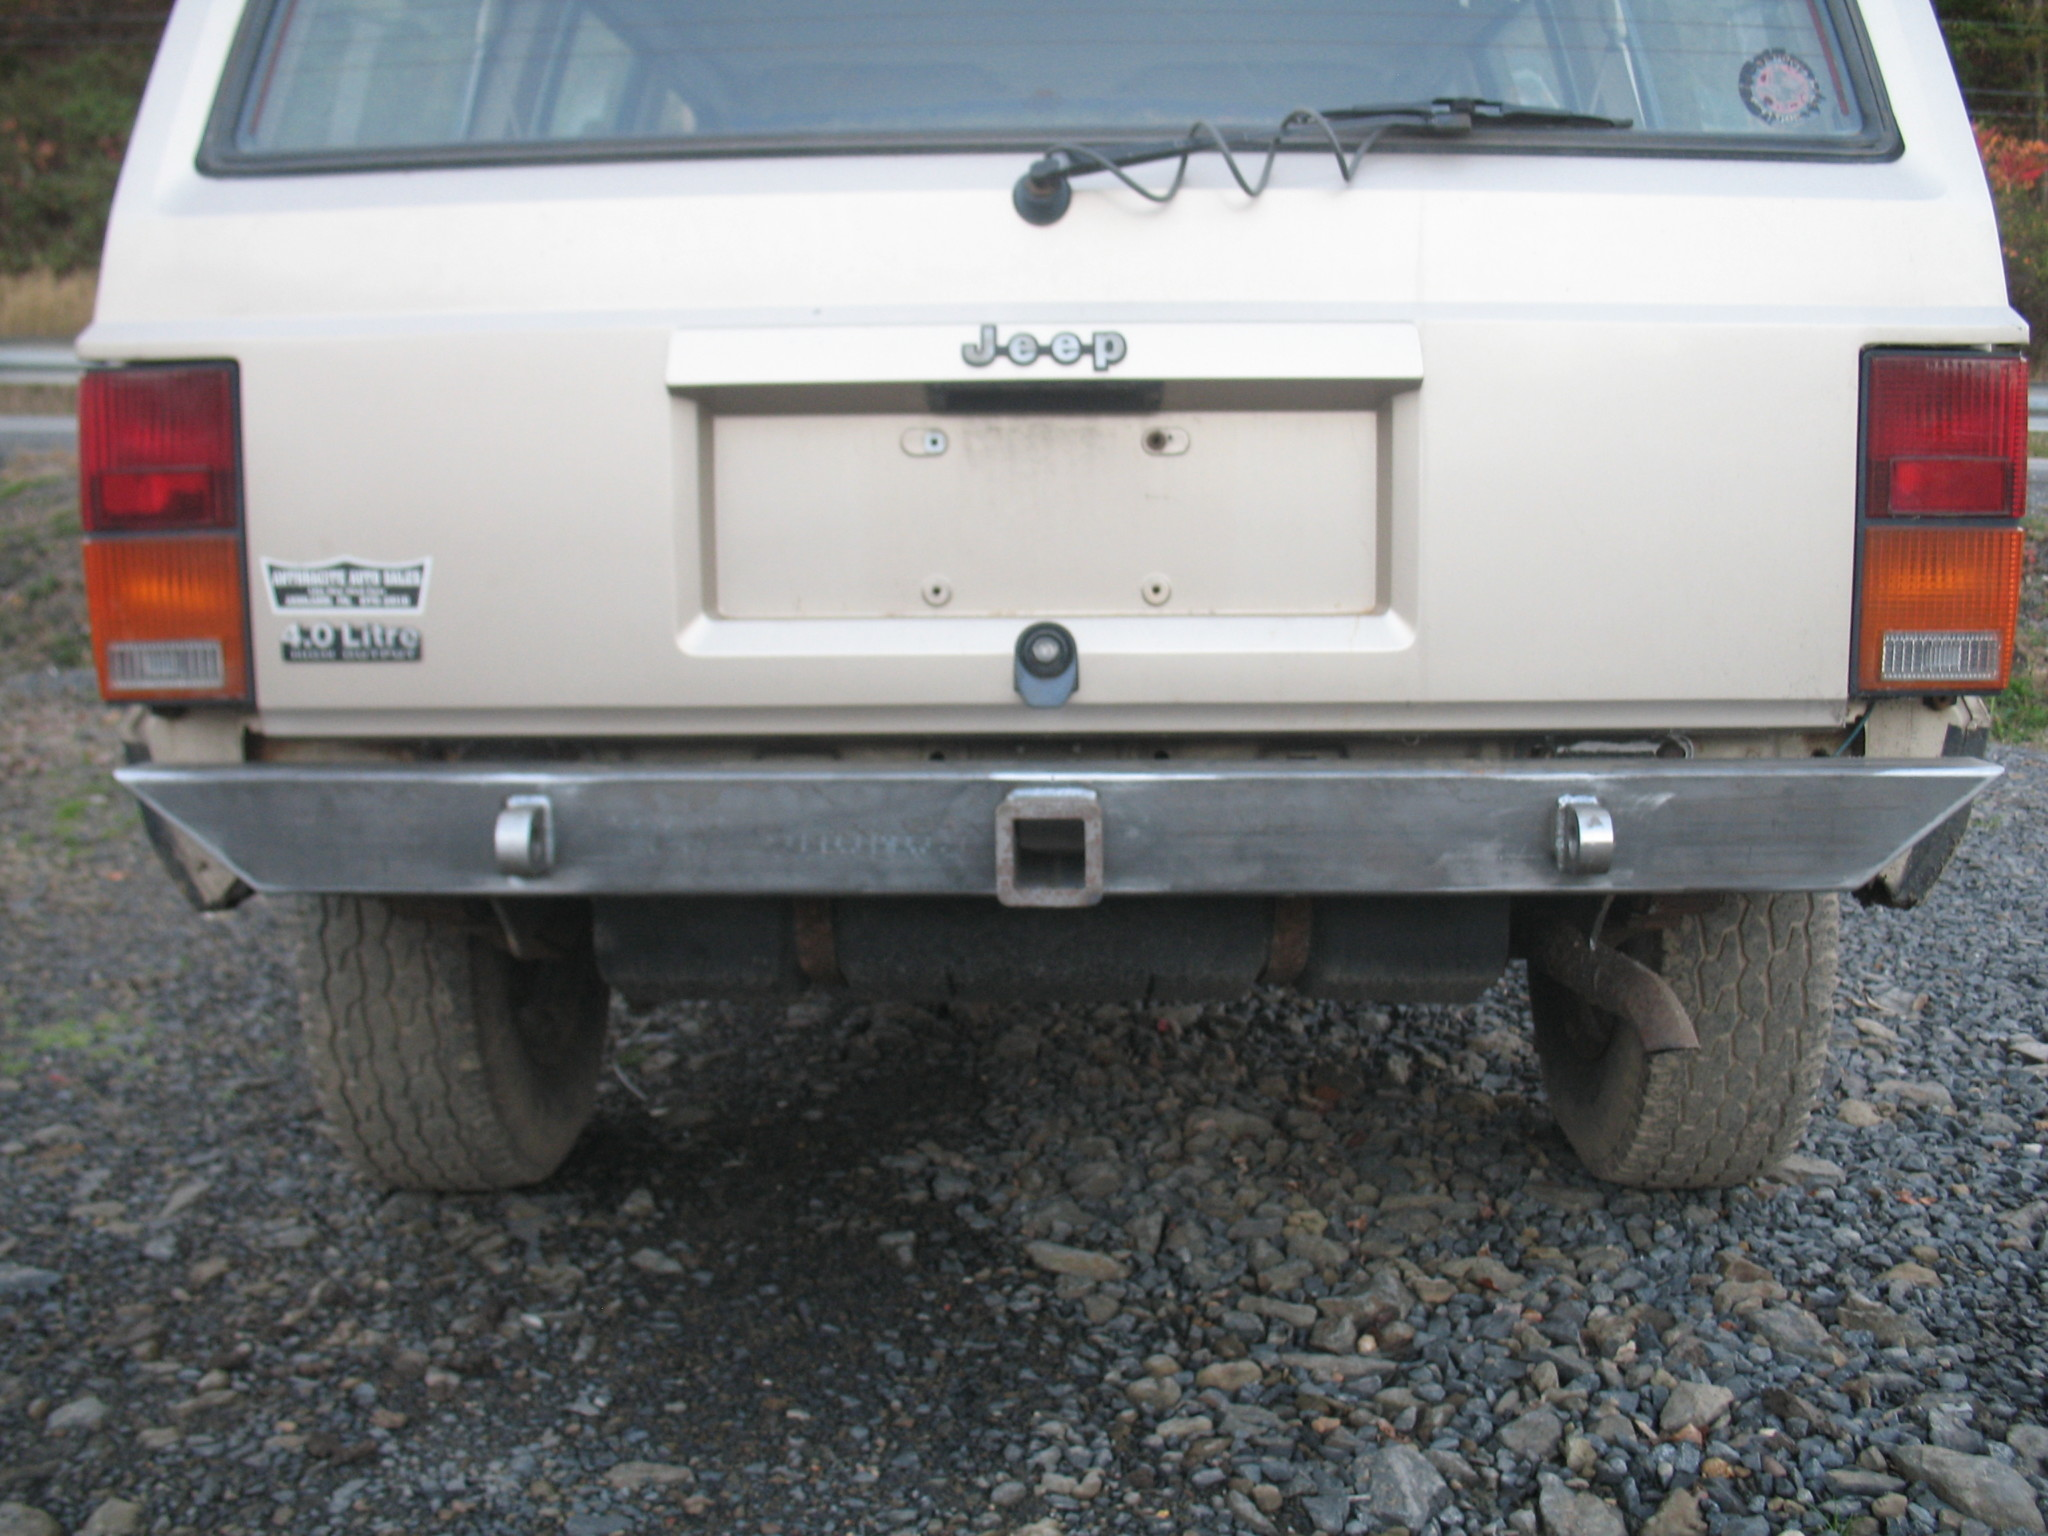 Jeep Cherokee Xj Bumpers >> Affordable Rear Bumper-Jeep Cherokee XJ (84-01) - Affordable Offroad